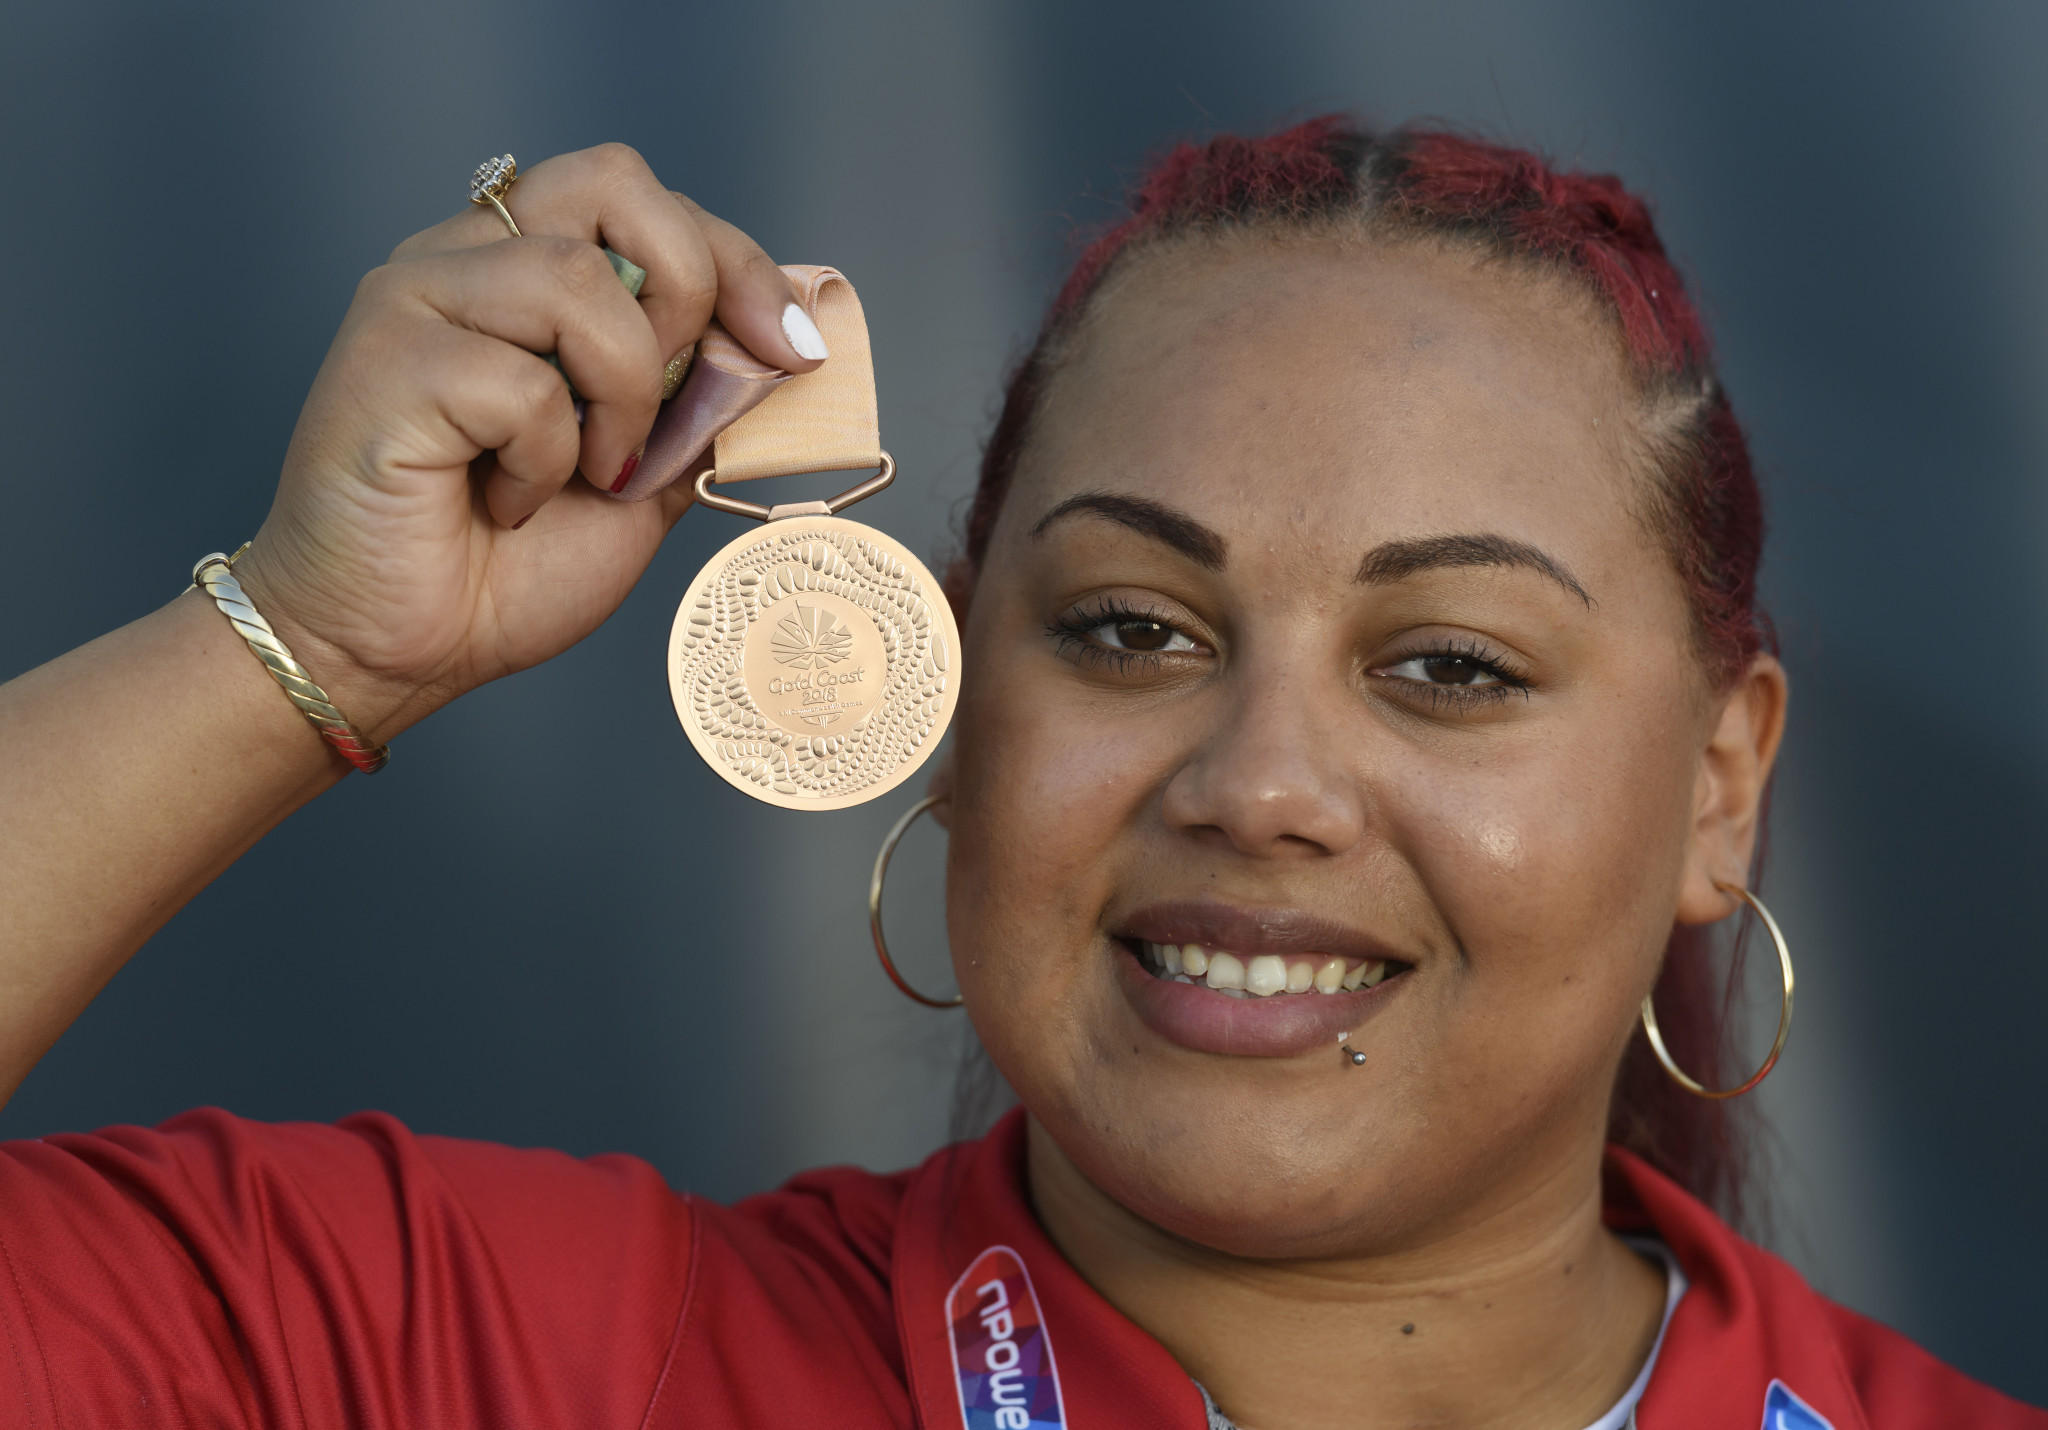 Emily Campbell, winner of a Commonwealth Games bronze medal for England in 2018, is in prime position to help Britain to its best performance at the European Weightlifting Championships since 1948